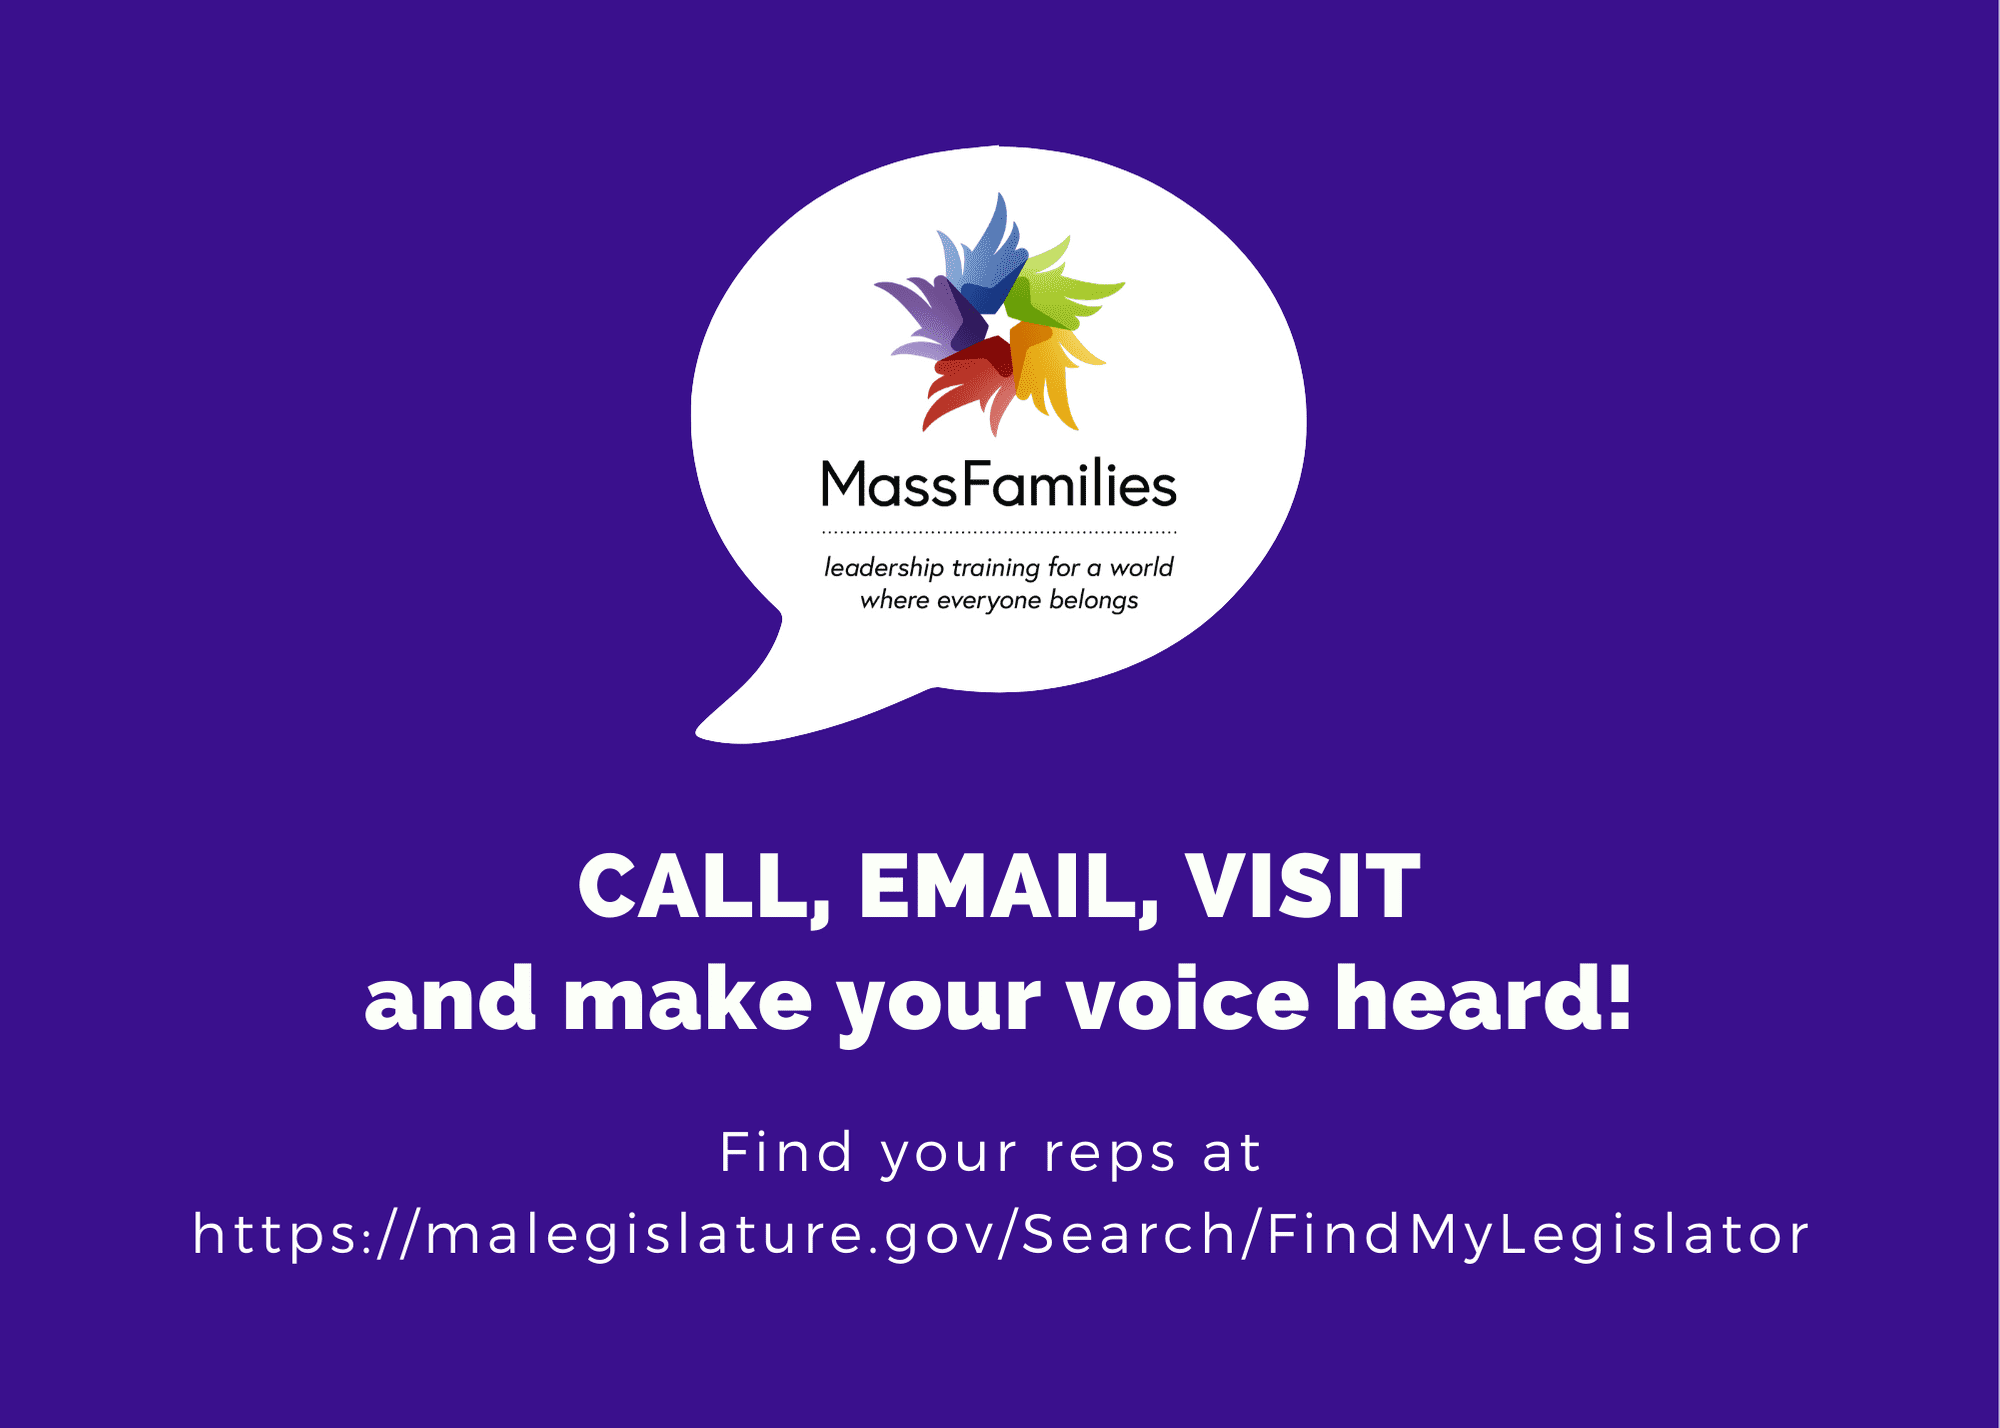 CALL EMAIL VISIT and make your voice heard